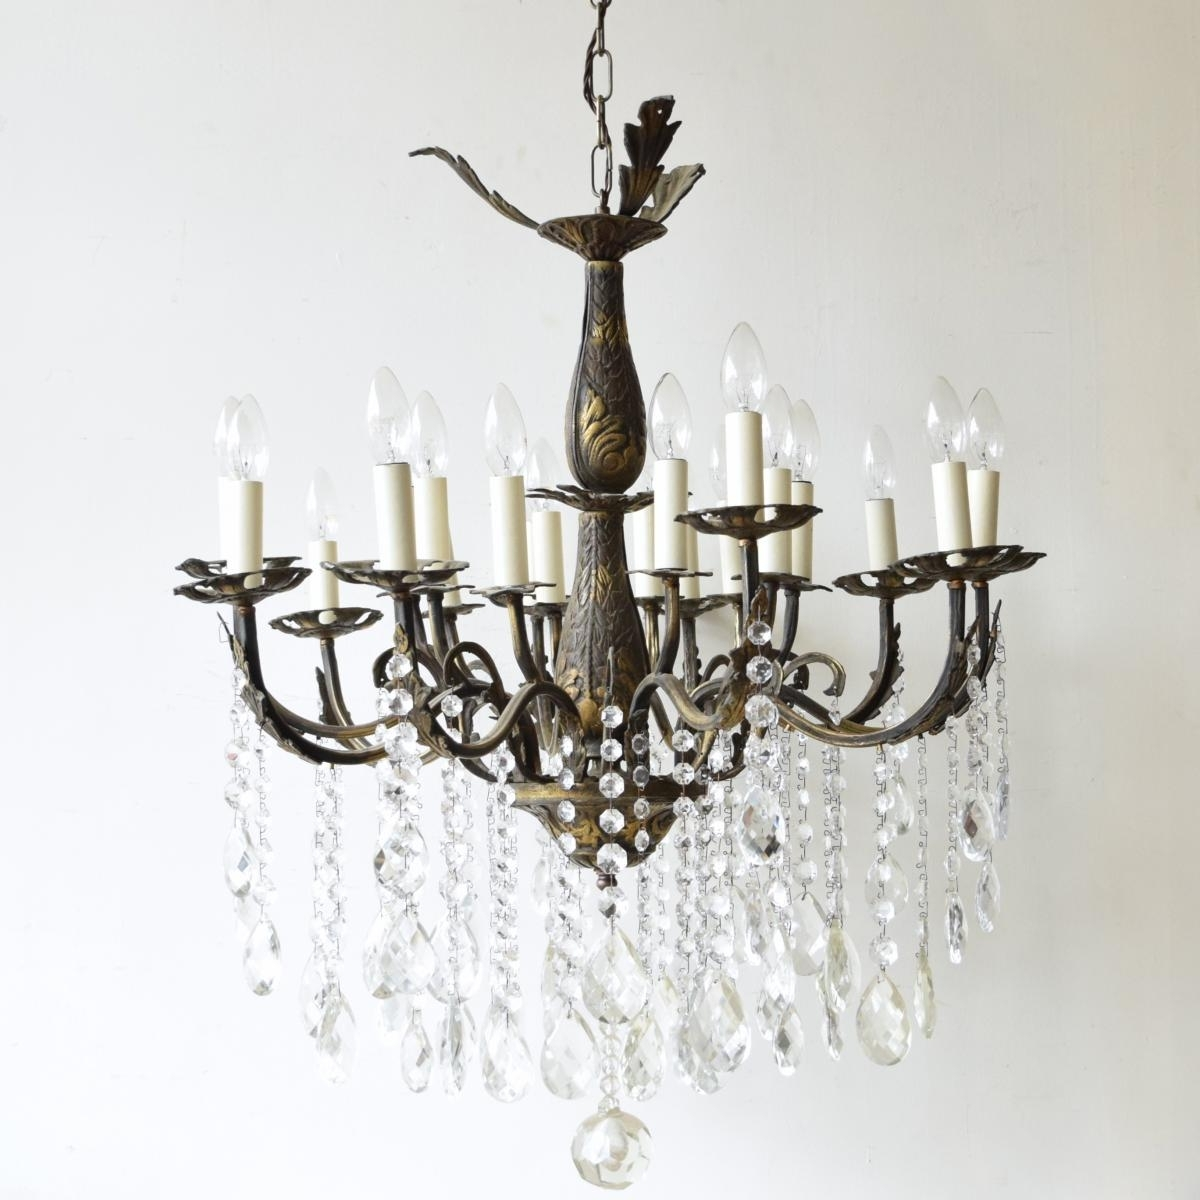 Old Brass Chandelier Pertaining To Latest Large Vintage French 16 Light Brass Chandelier For Sale At Pamono (View 19 of 20)